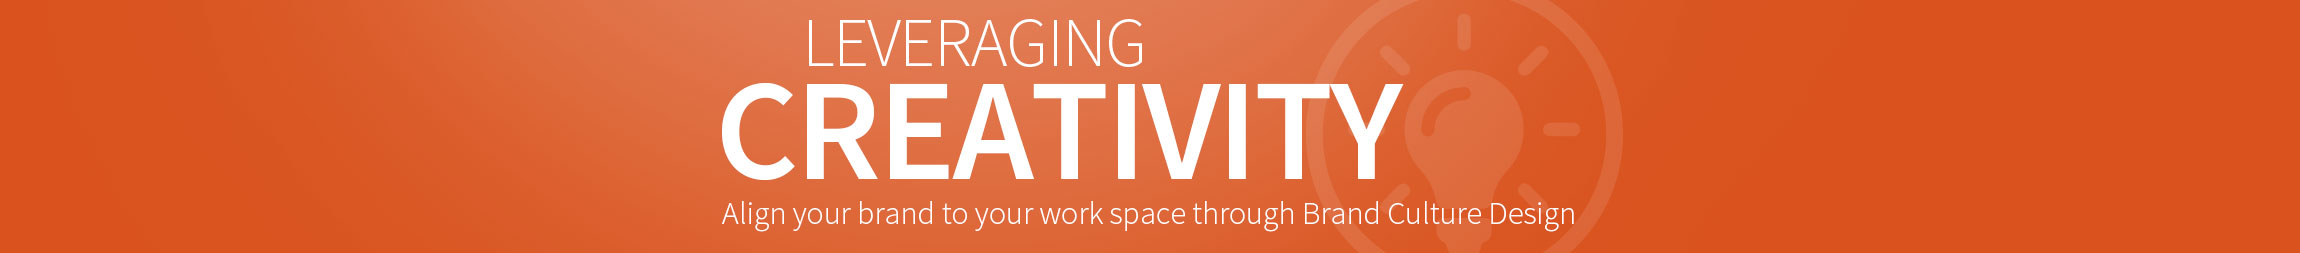 Leveraging Creativity - Align Your Brand to your workspace through brand culture design